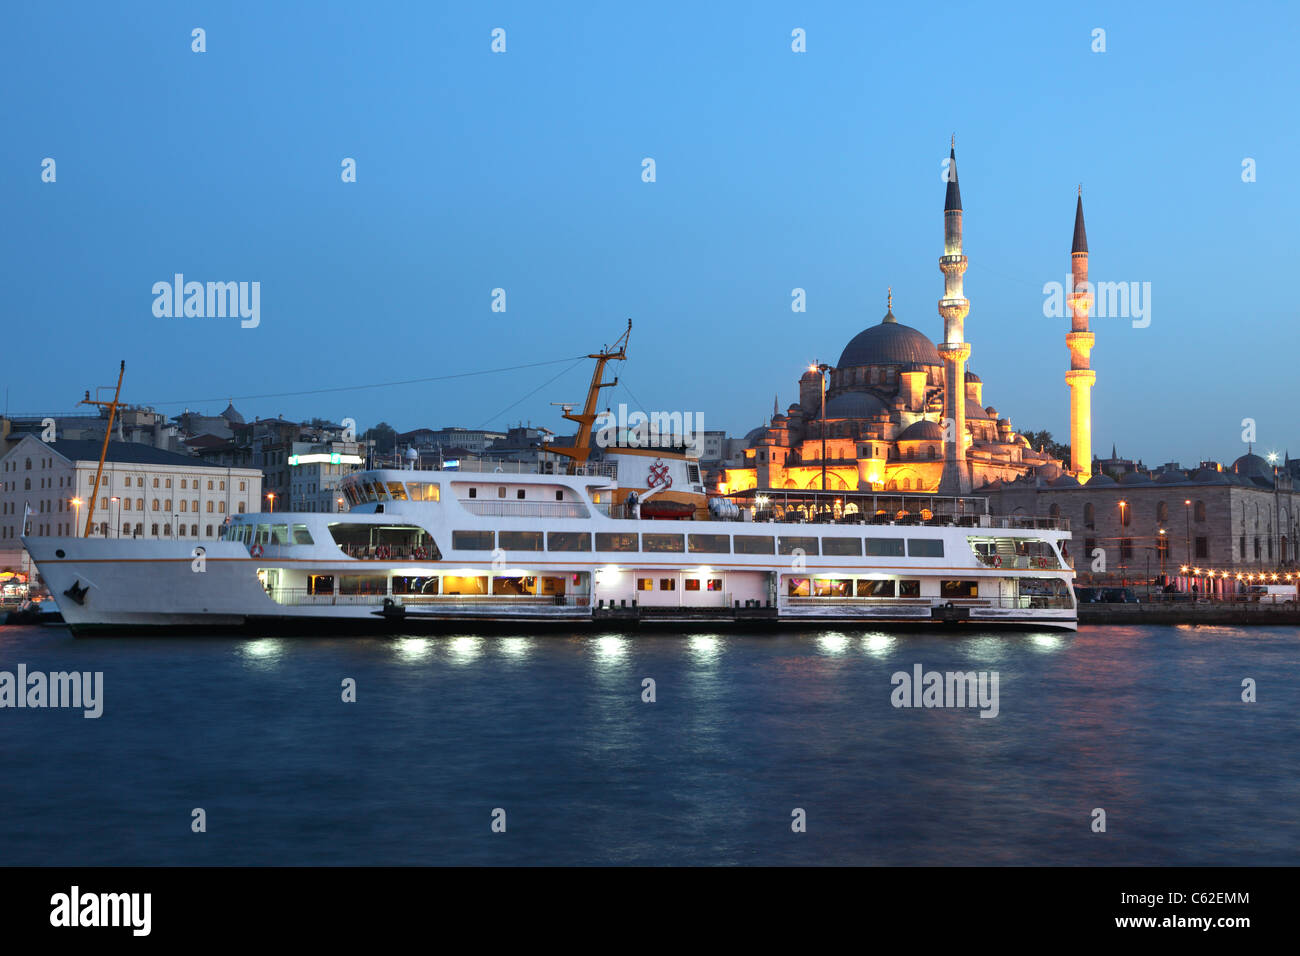 Ferry boat at Golden Horn in Istanbul, Turkey - Stock Image